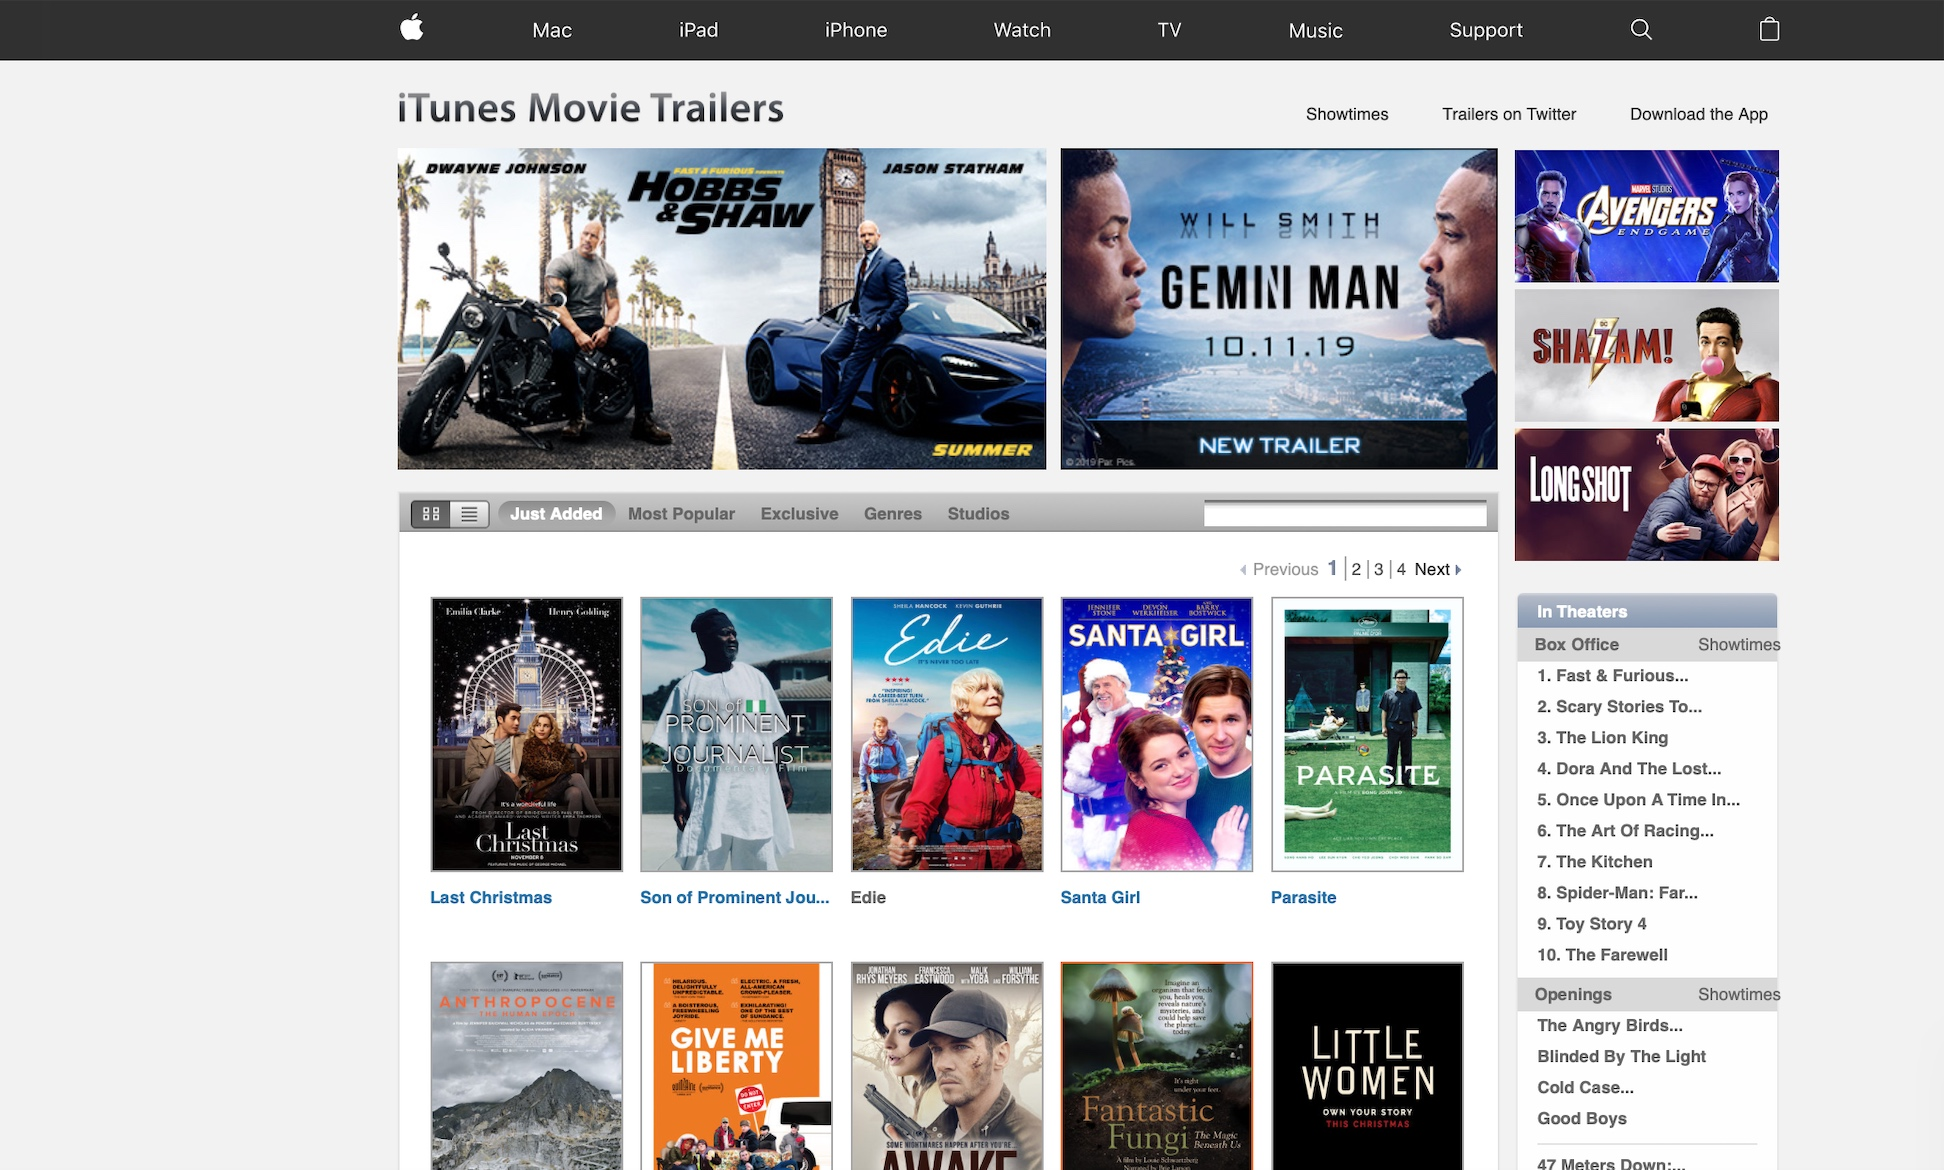 Apple iTunes trailer page